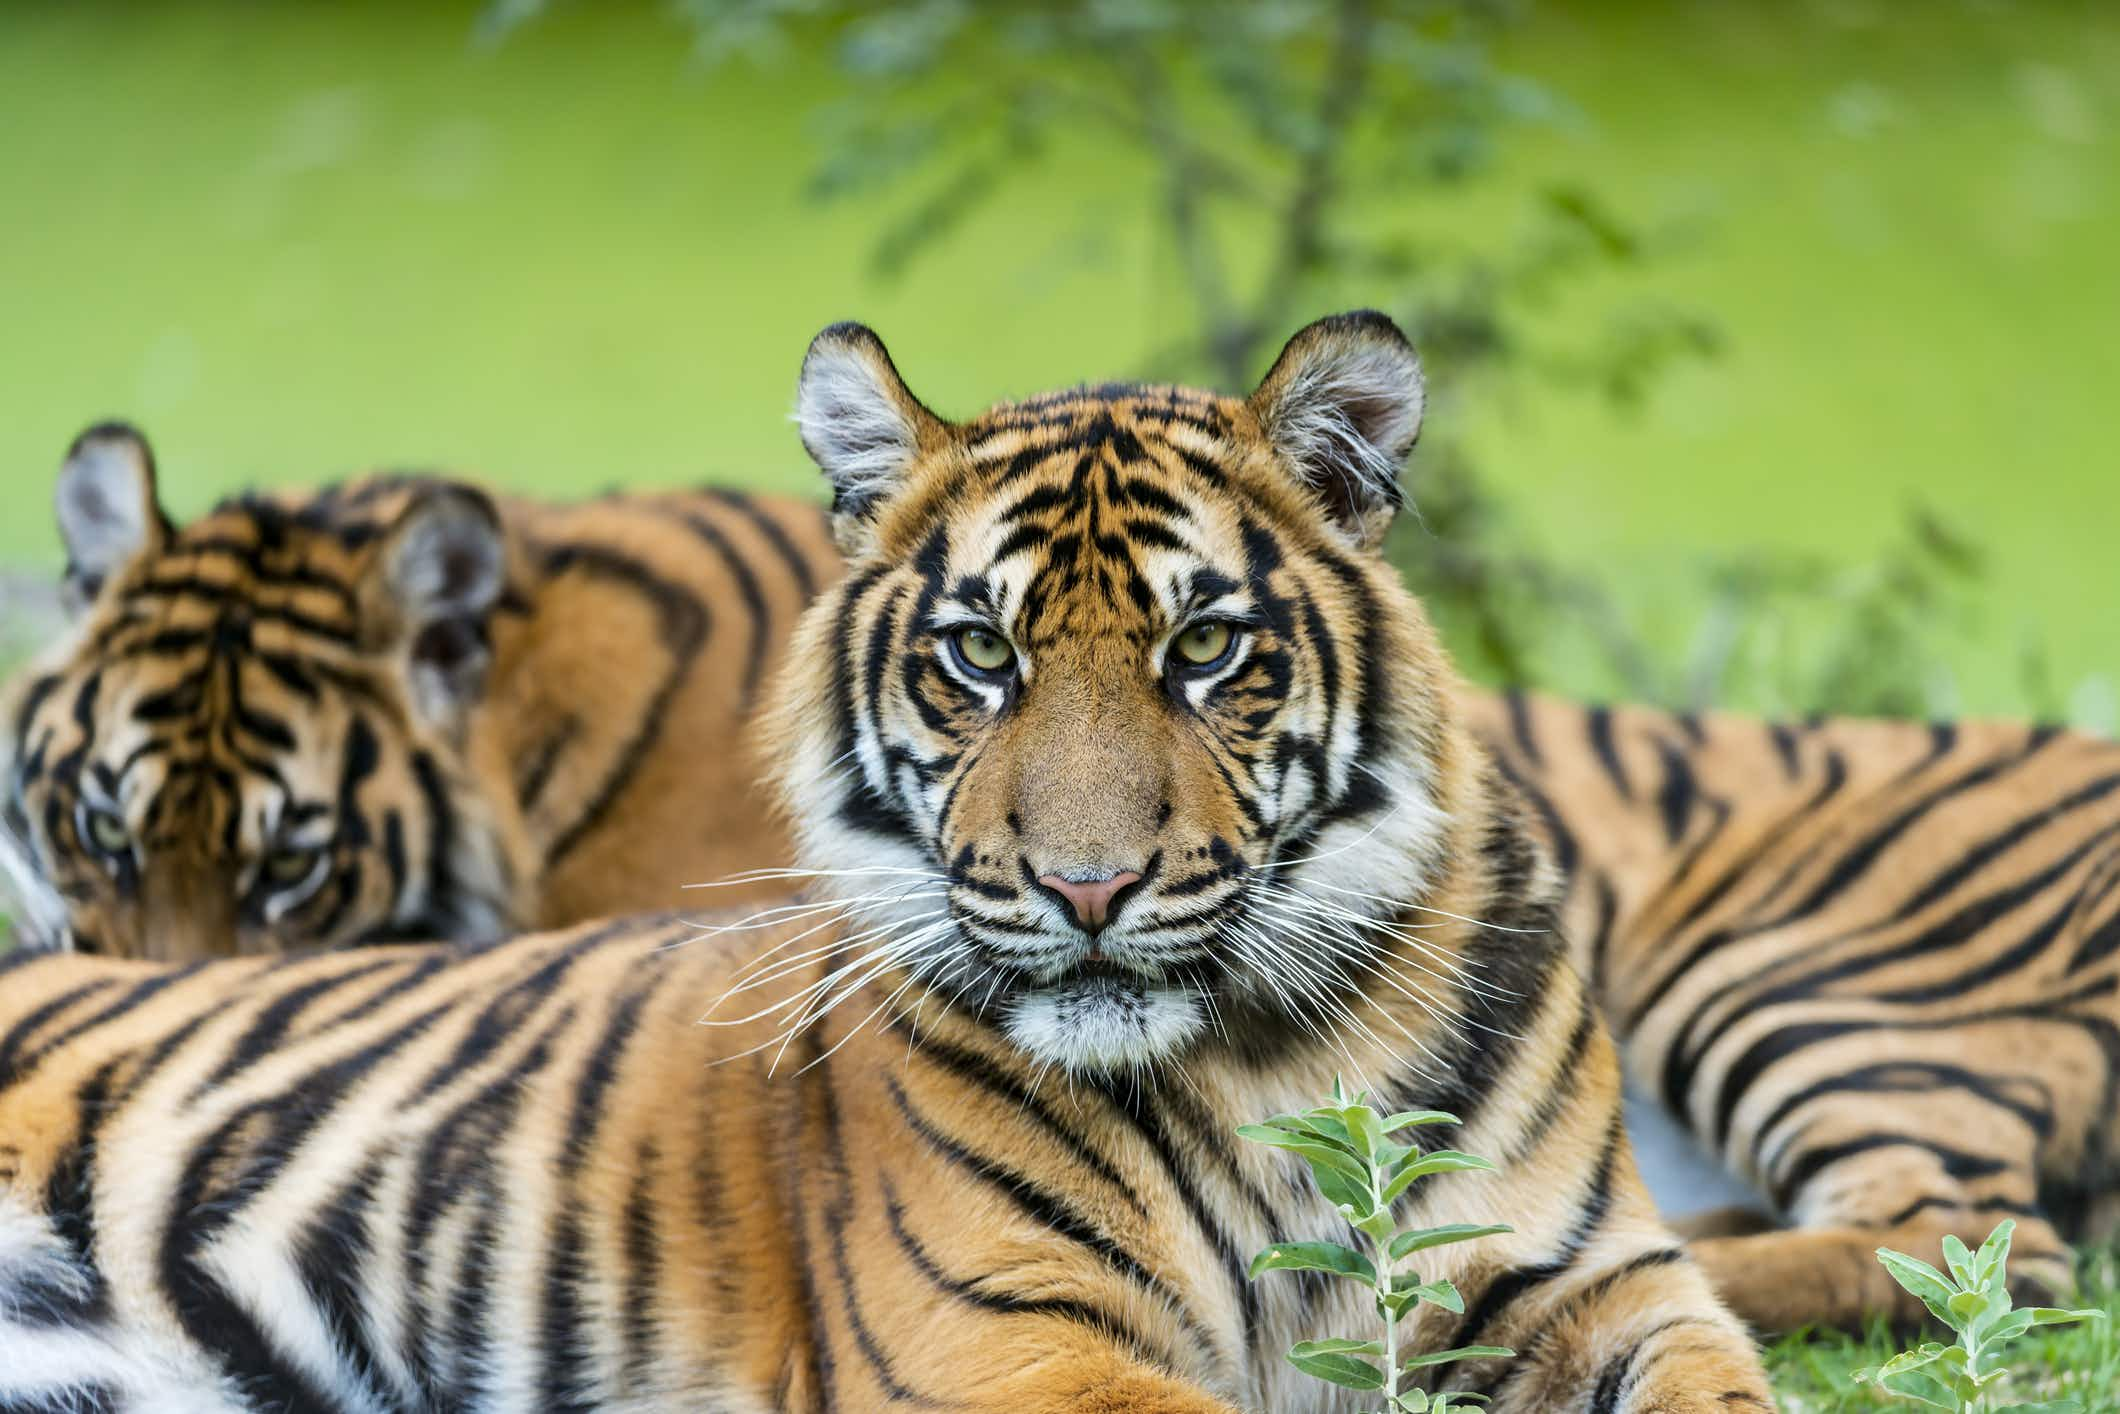 The Sumatran tiger population is growing in one of its most important habitats